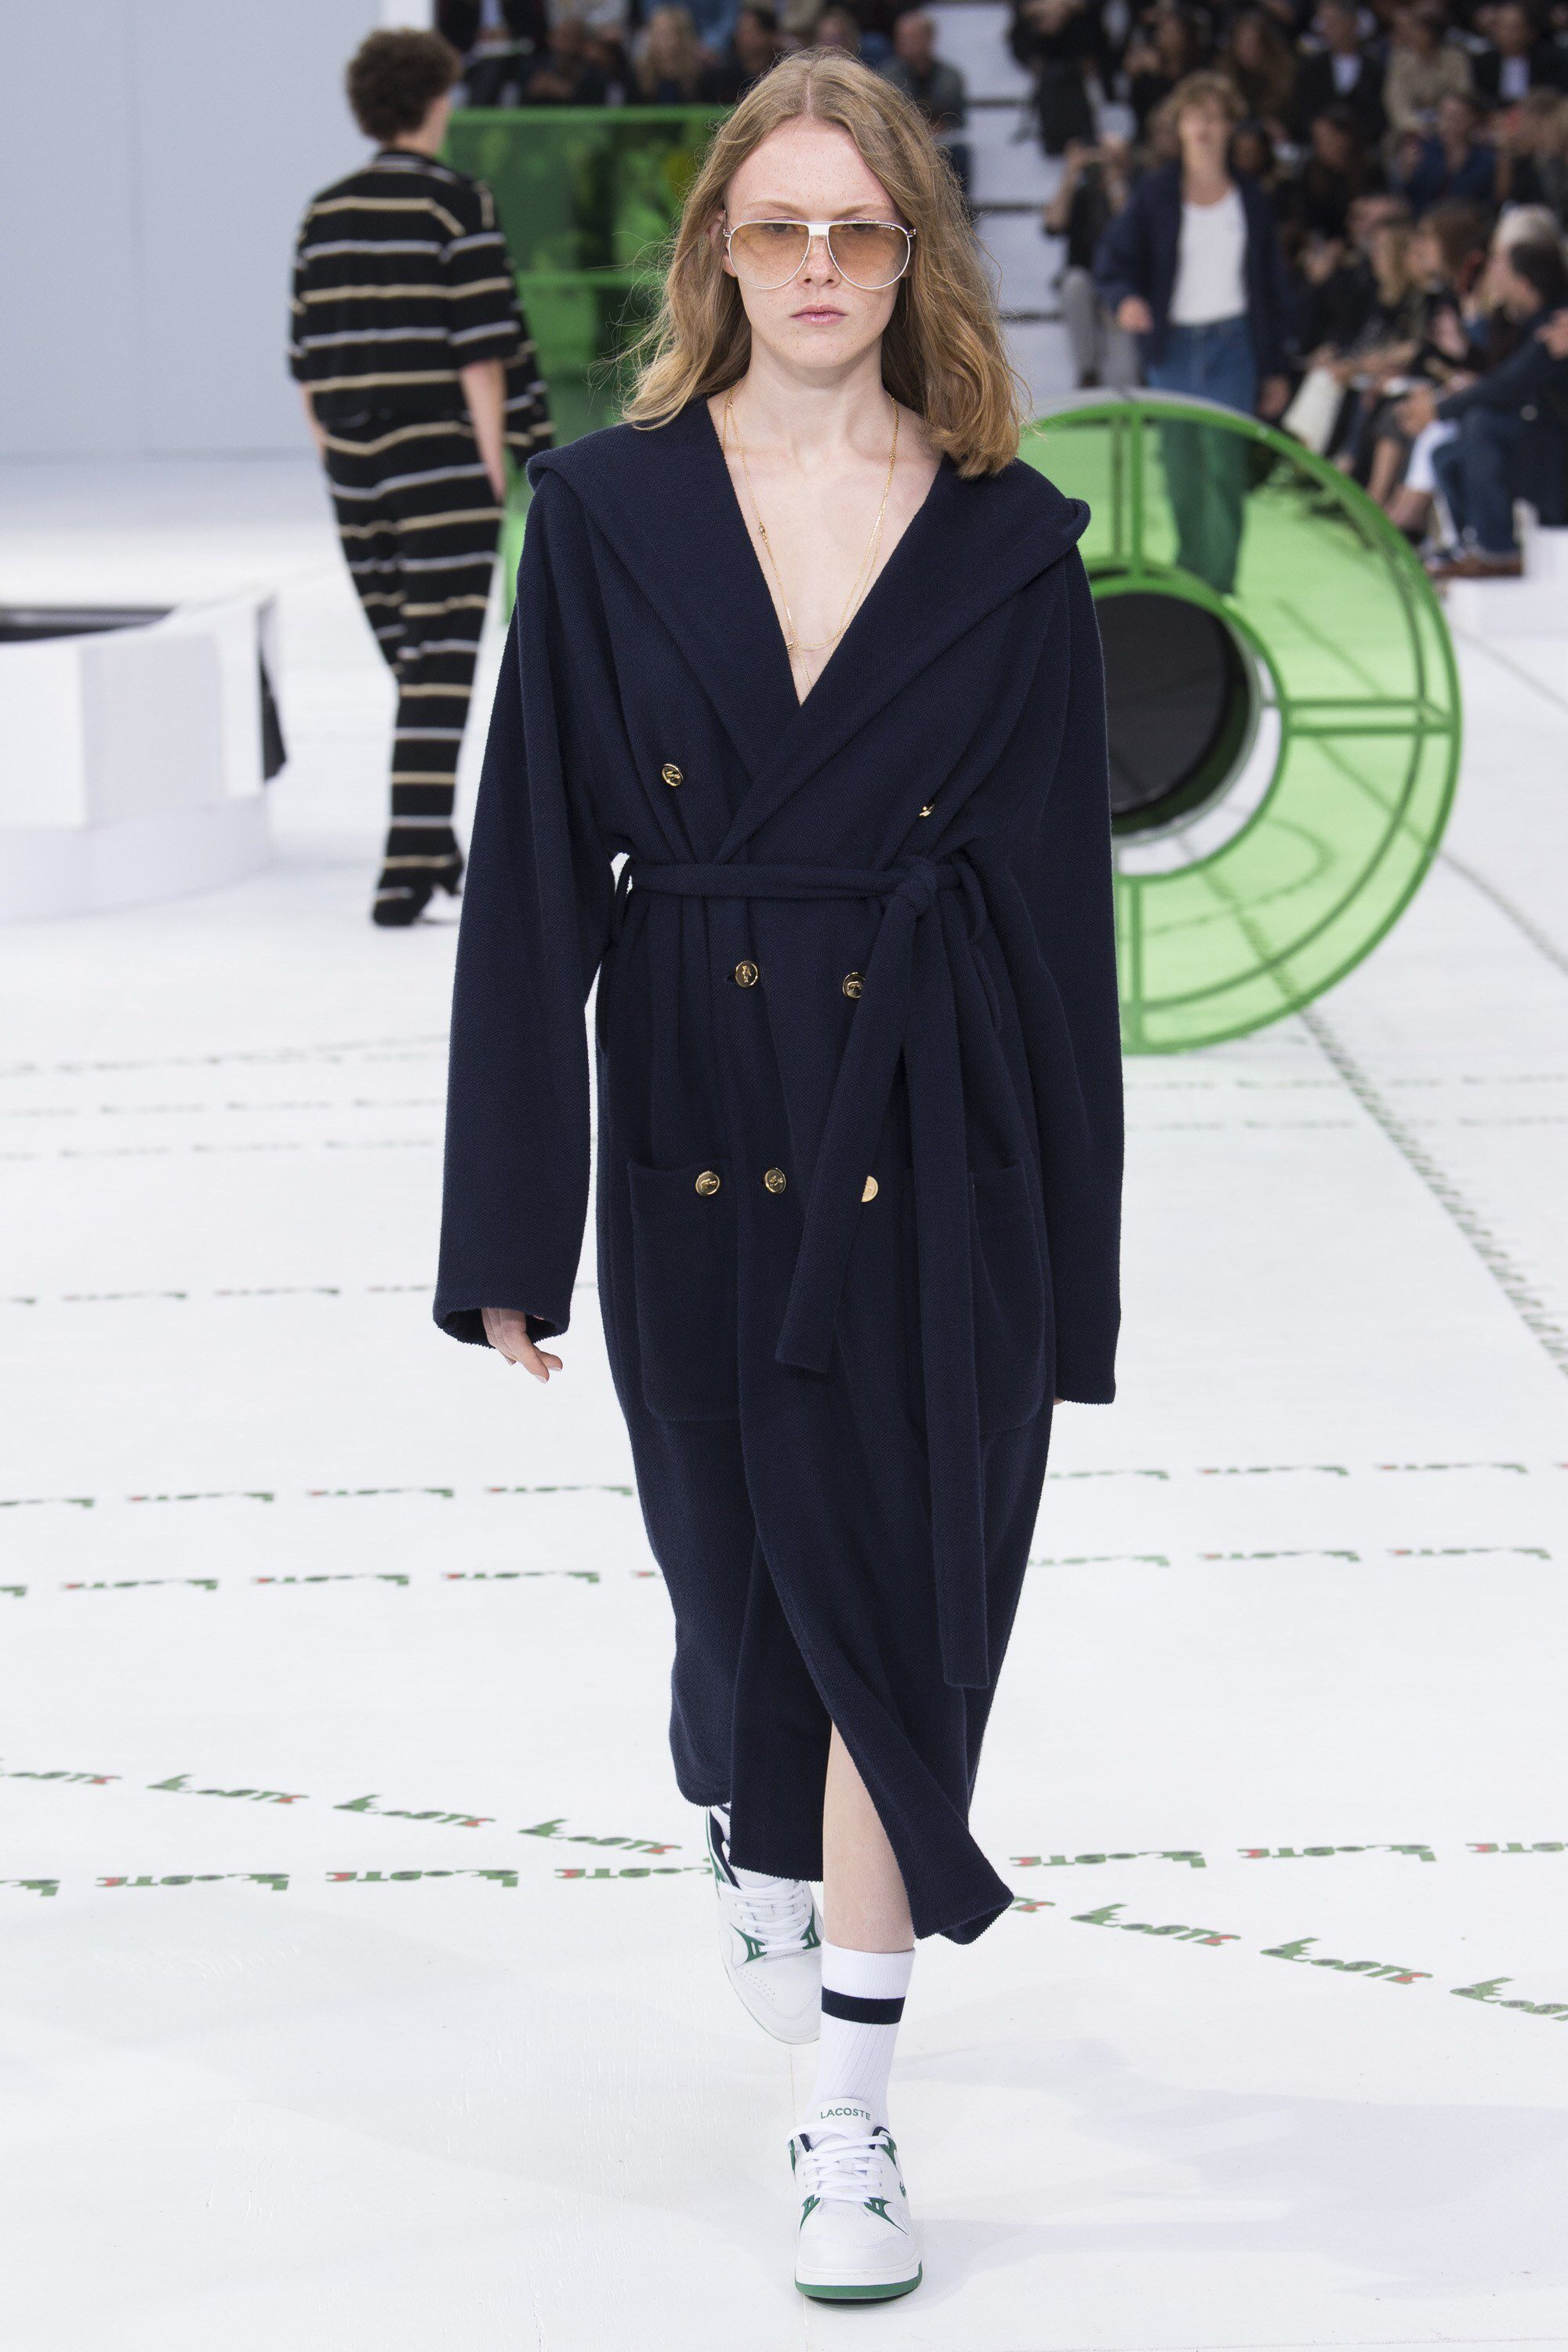 b2141499f18 Lacoste Spring 2018 Ready-to-Wear Fashion Show Collection